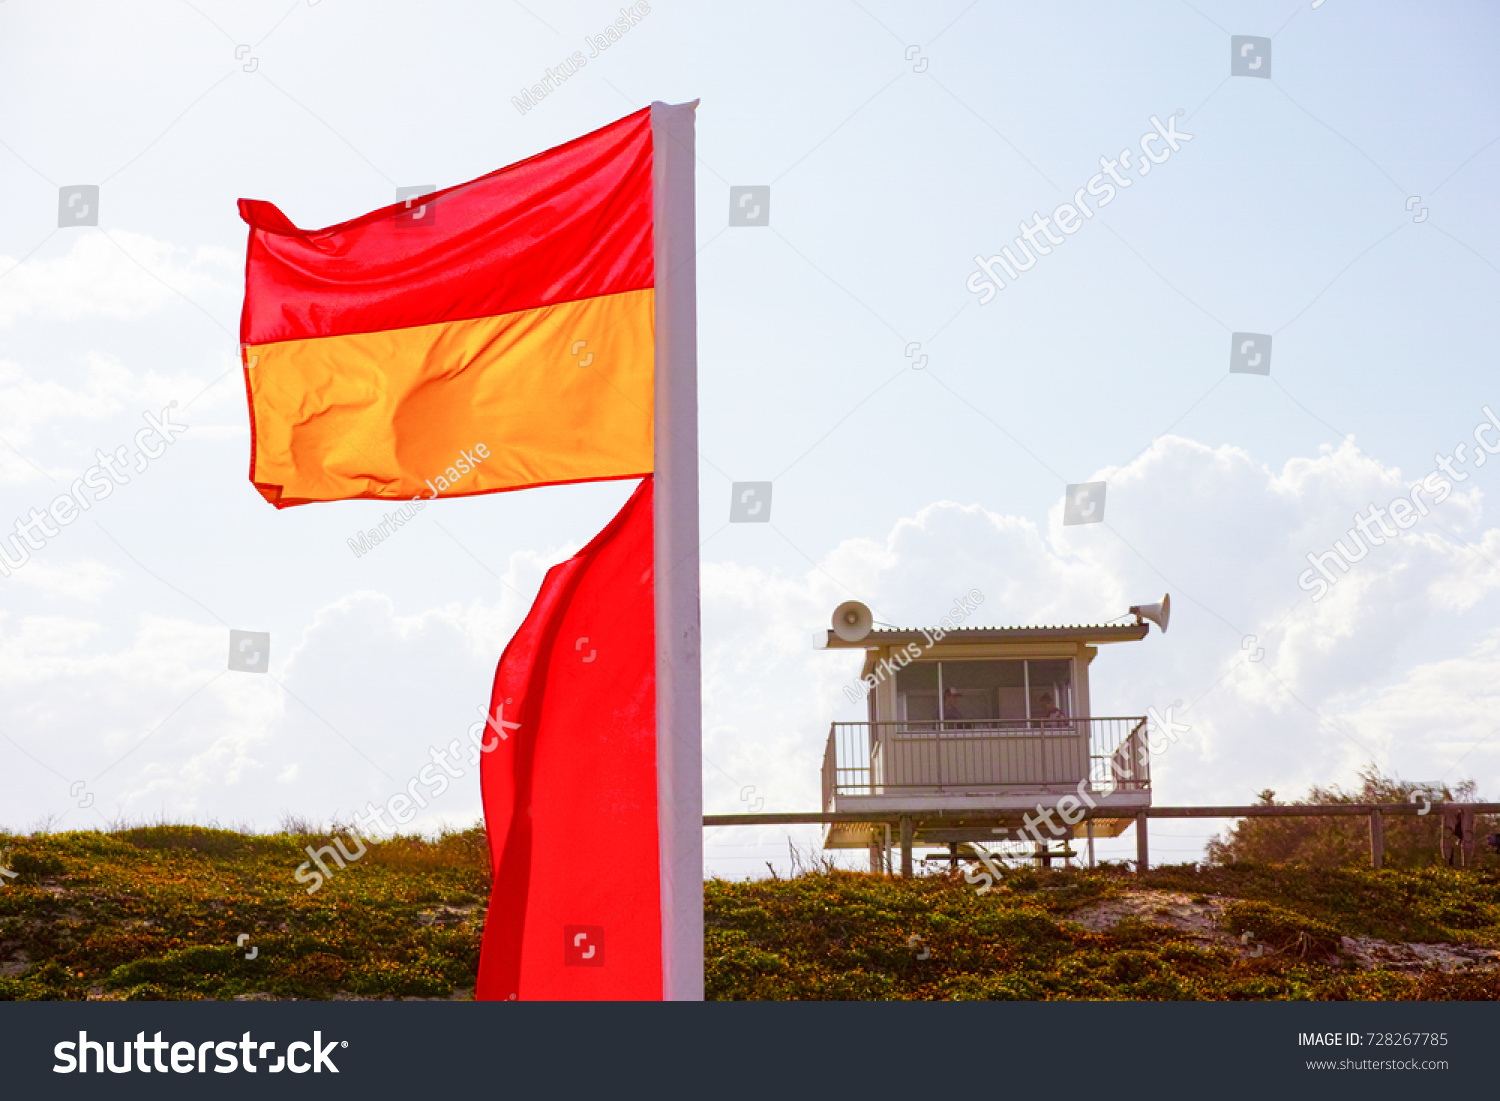 Beach flags and lifeguard tower overlooking australian beach red and yellow flag lifesaver signs